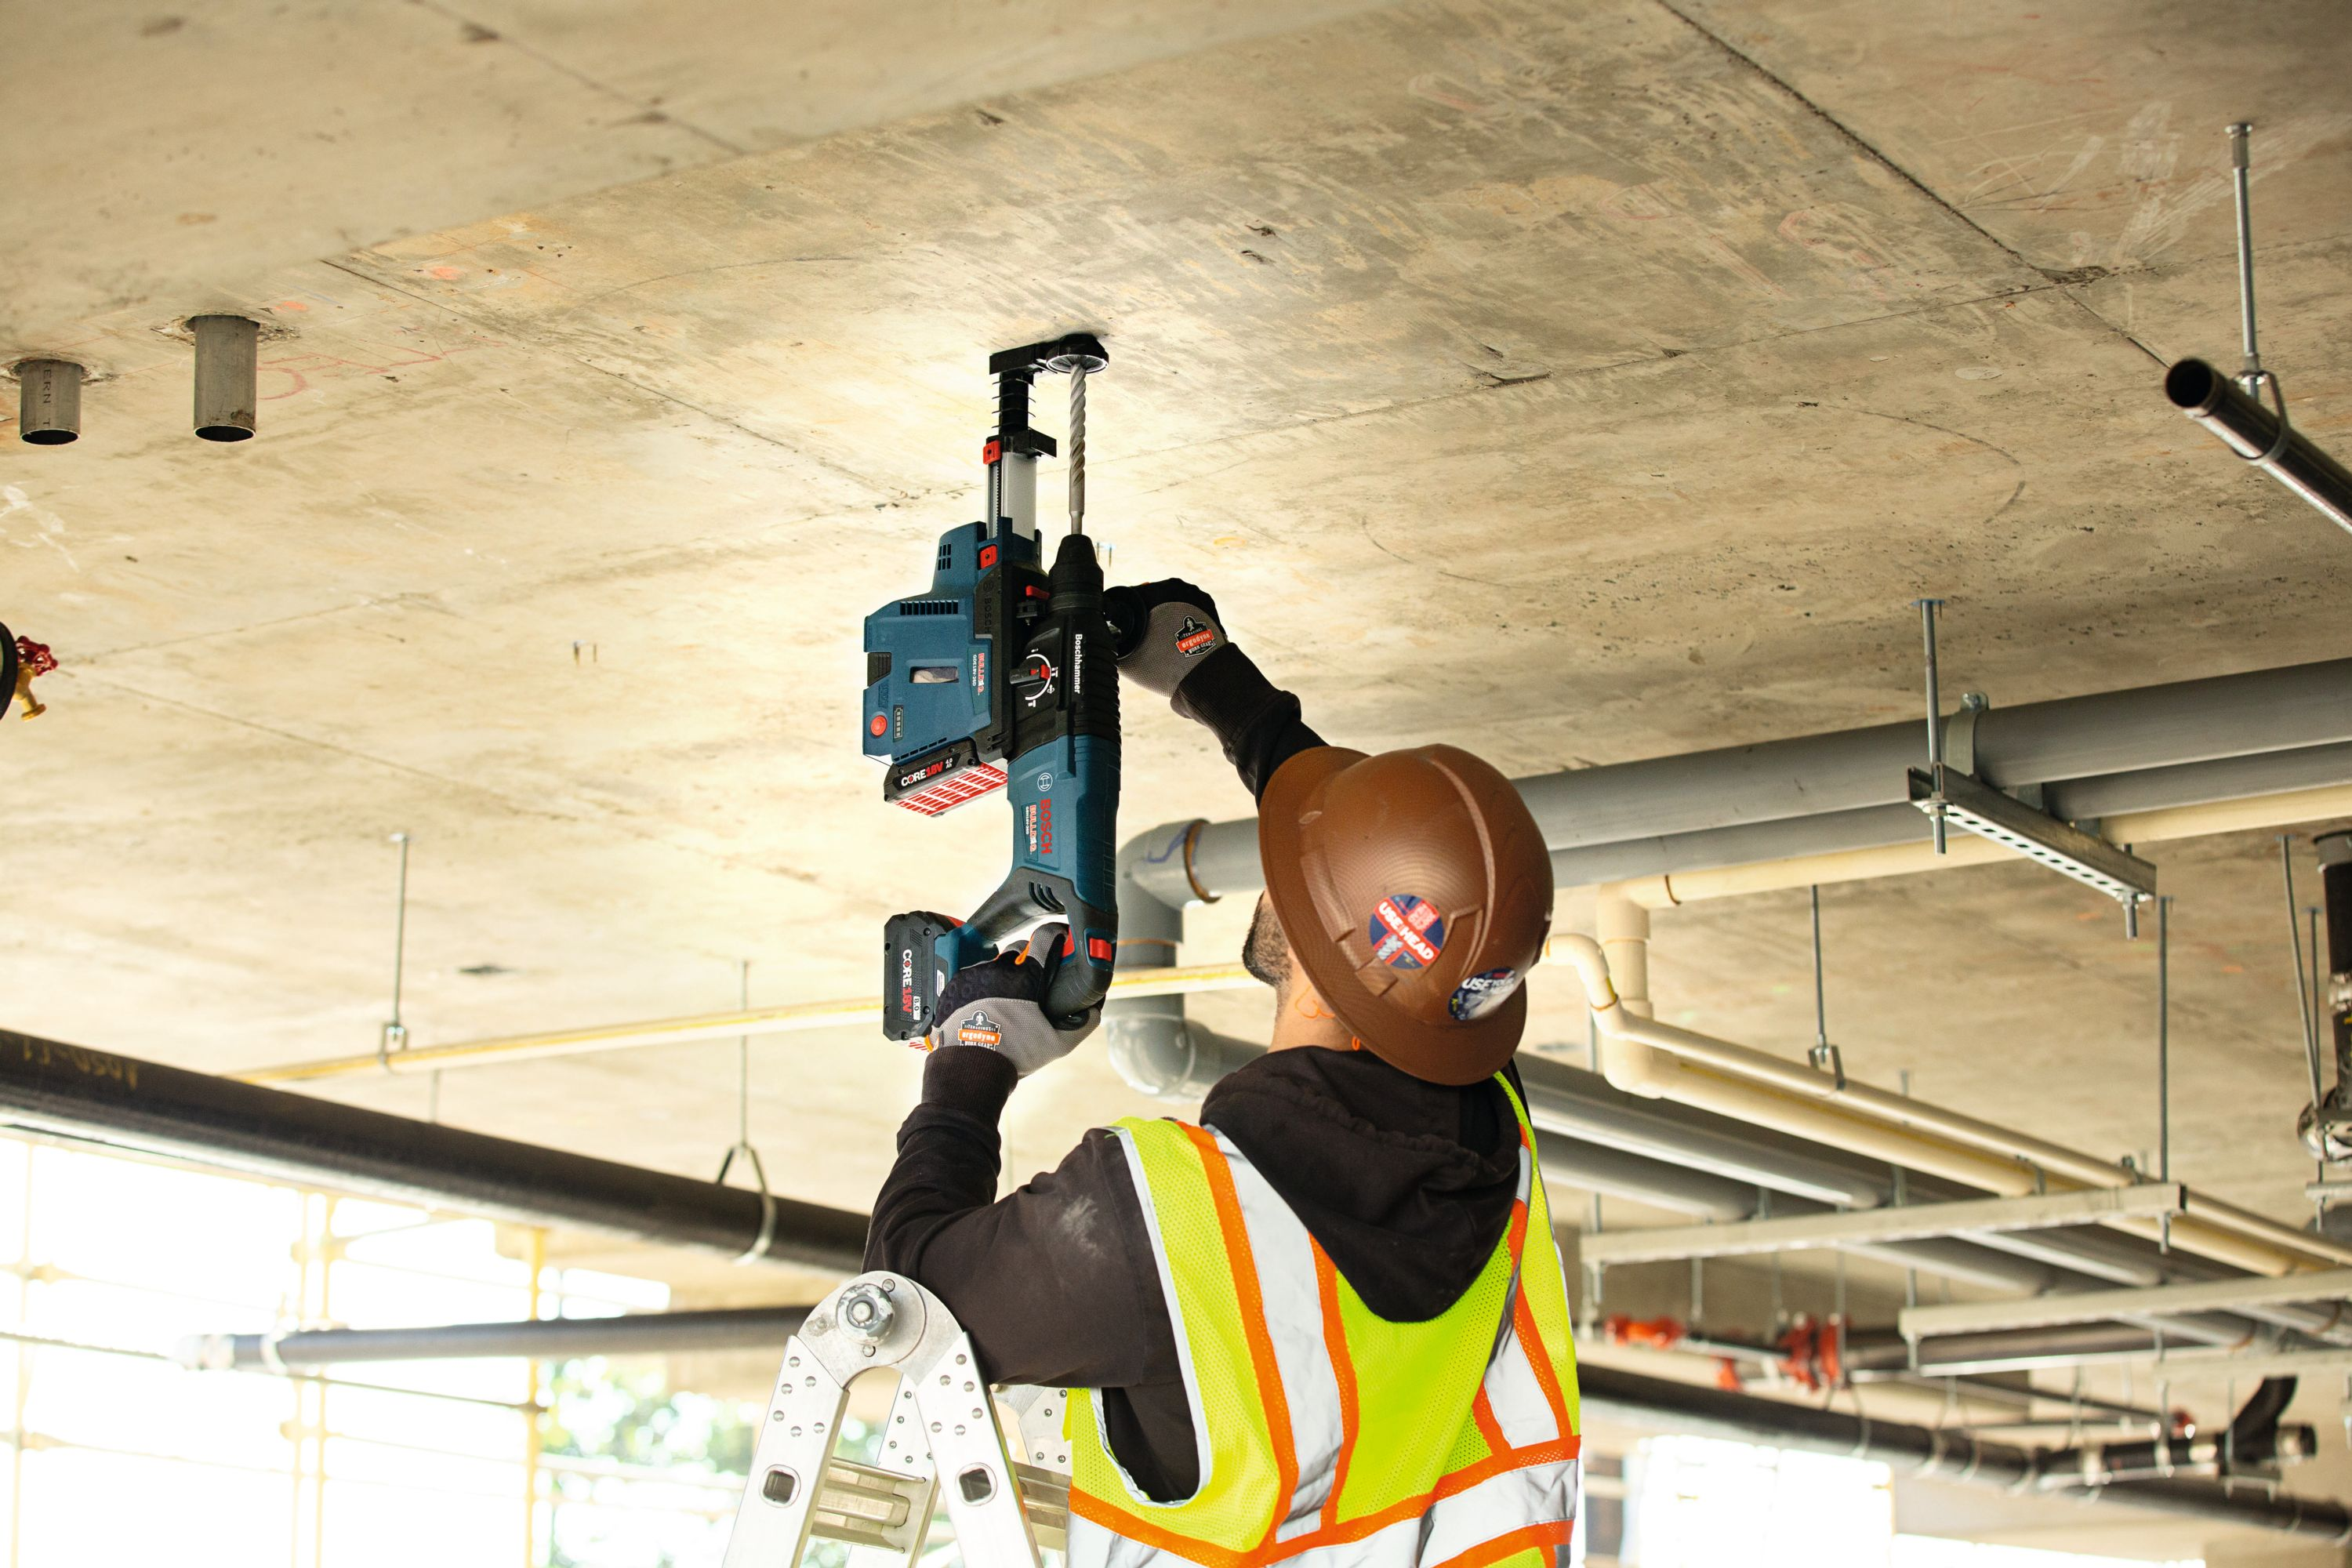 The GBH18V-26D cordless Bulldog is engineered with Bosch's KickBack Control technology, which reduces the risk of sudden tool reactions in bit bind-up situations.